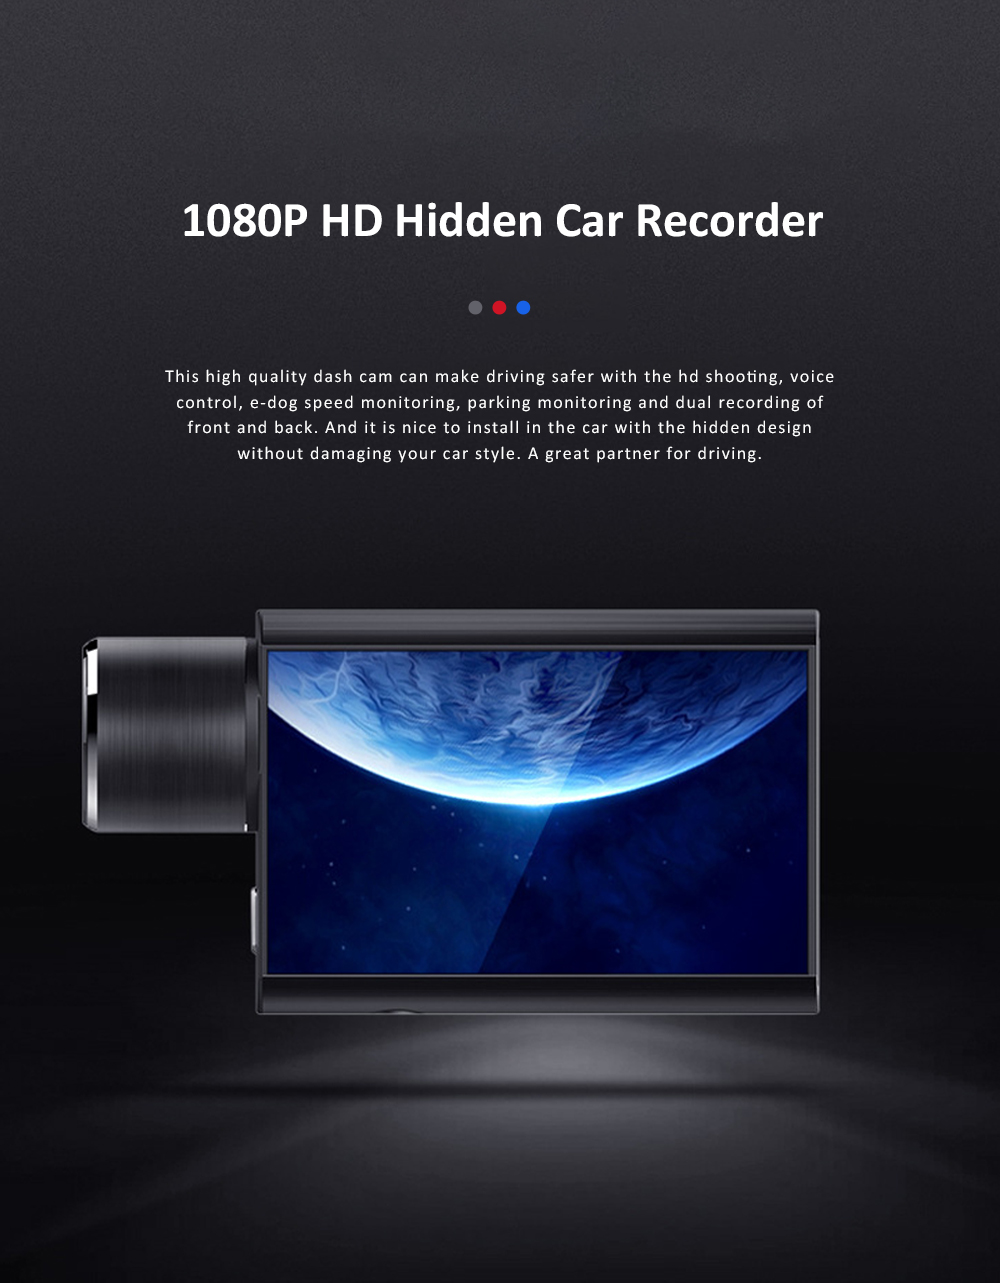 Hidden Car Recorder 1080P HD Dash Cam with Superior Night Model Wide Angle Voice Control G-Sensor Parking Monitor 0